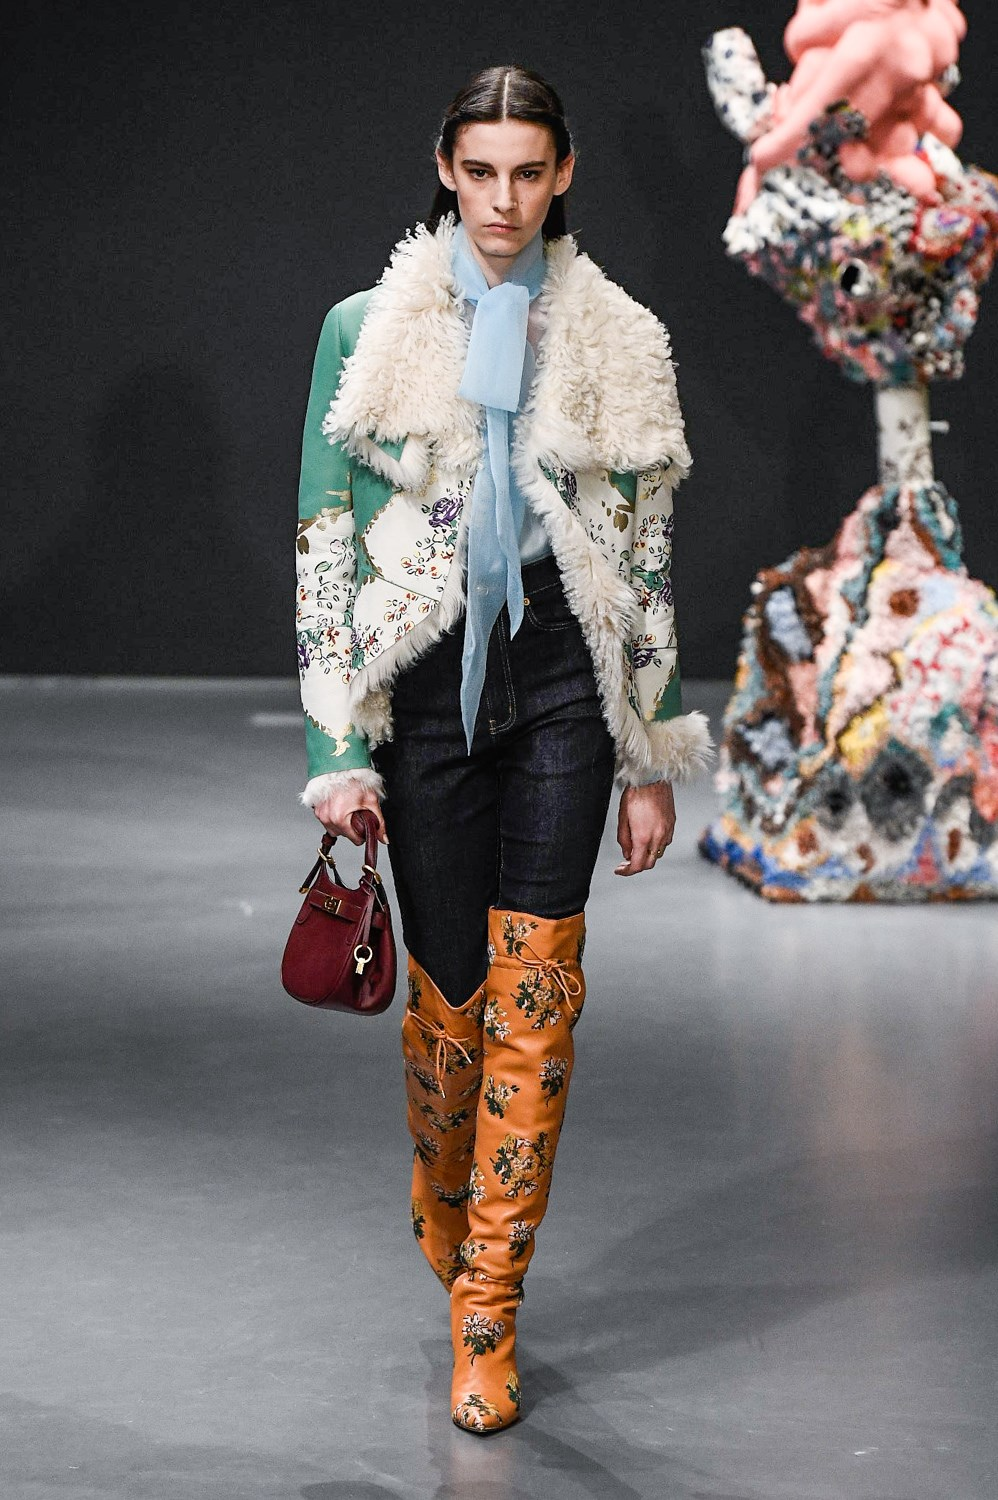 Top 10 Fashion Show Models of Fall 2020